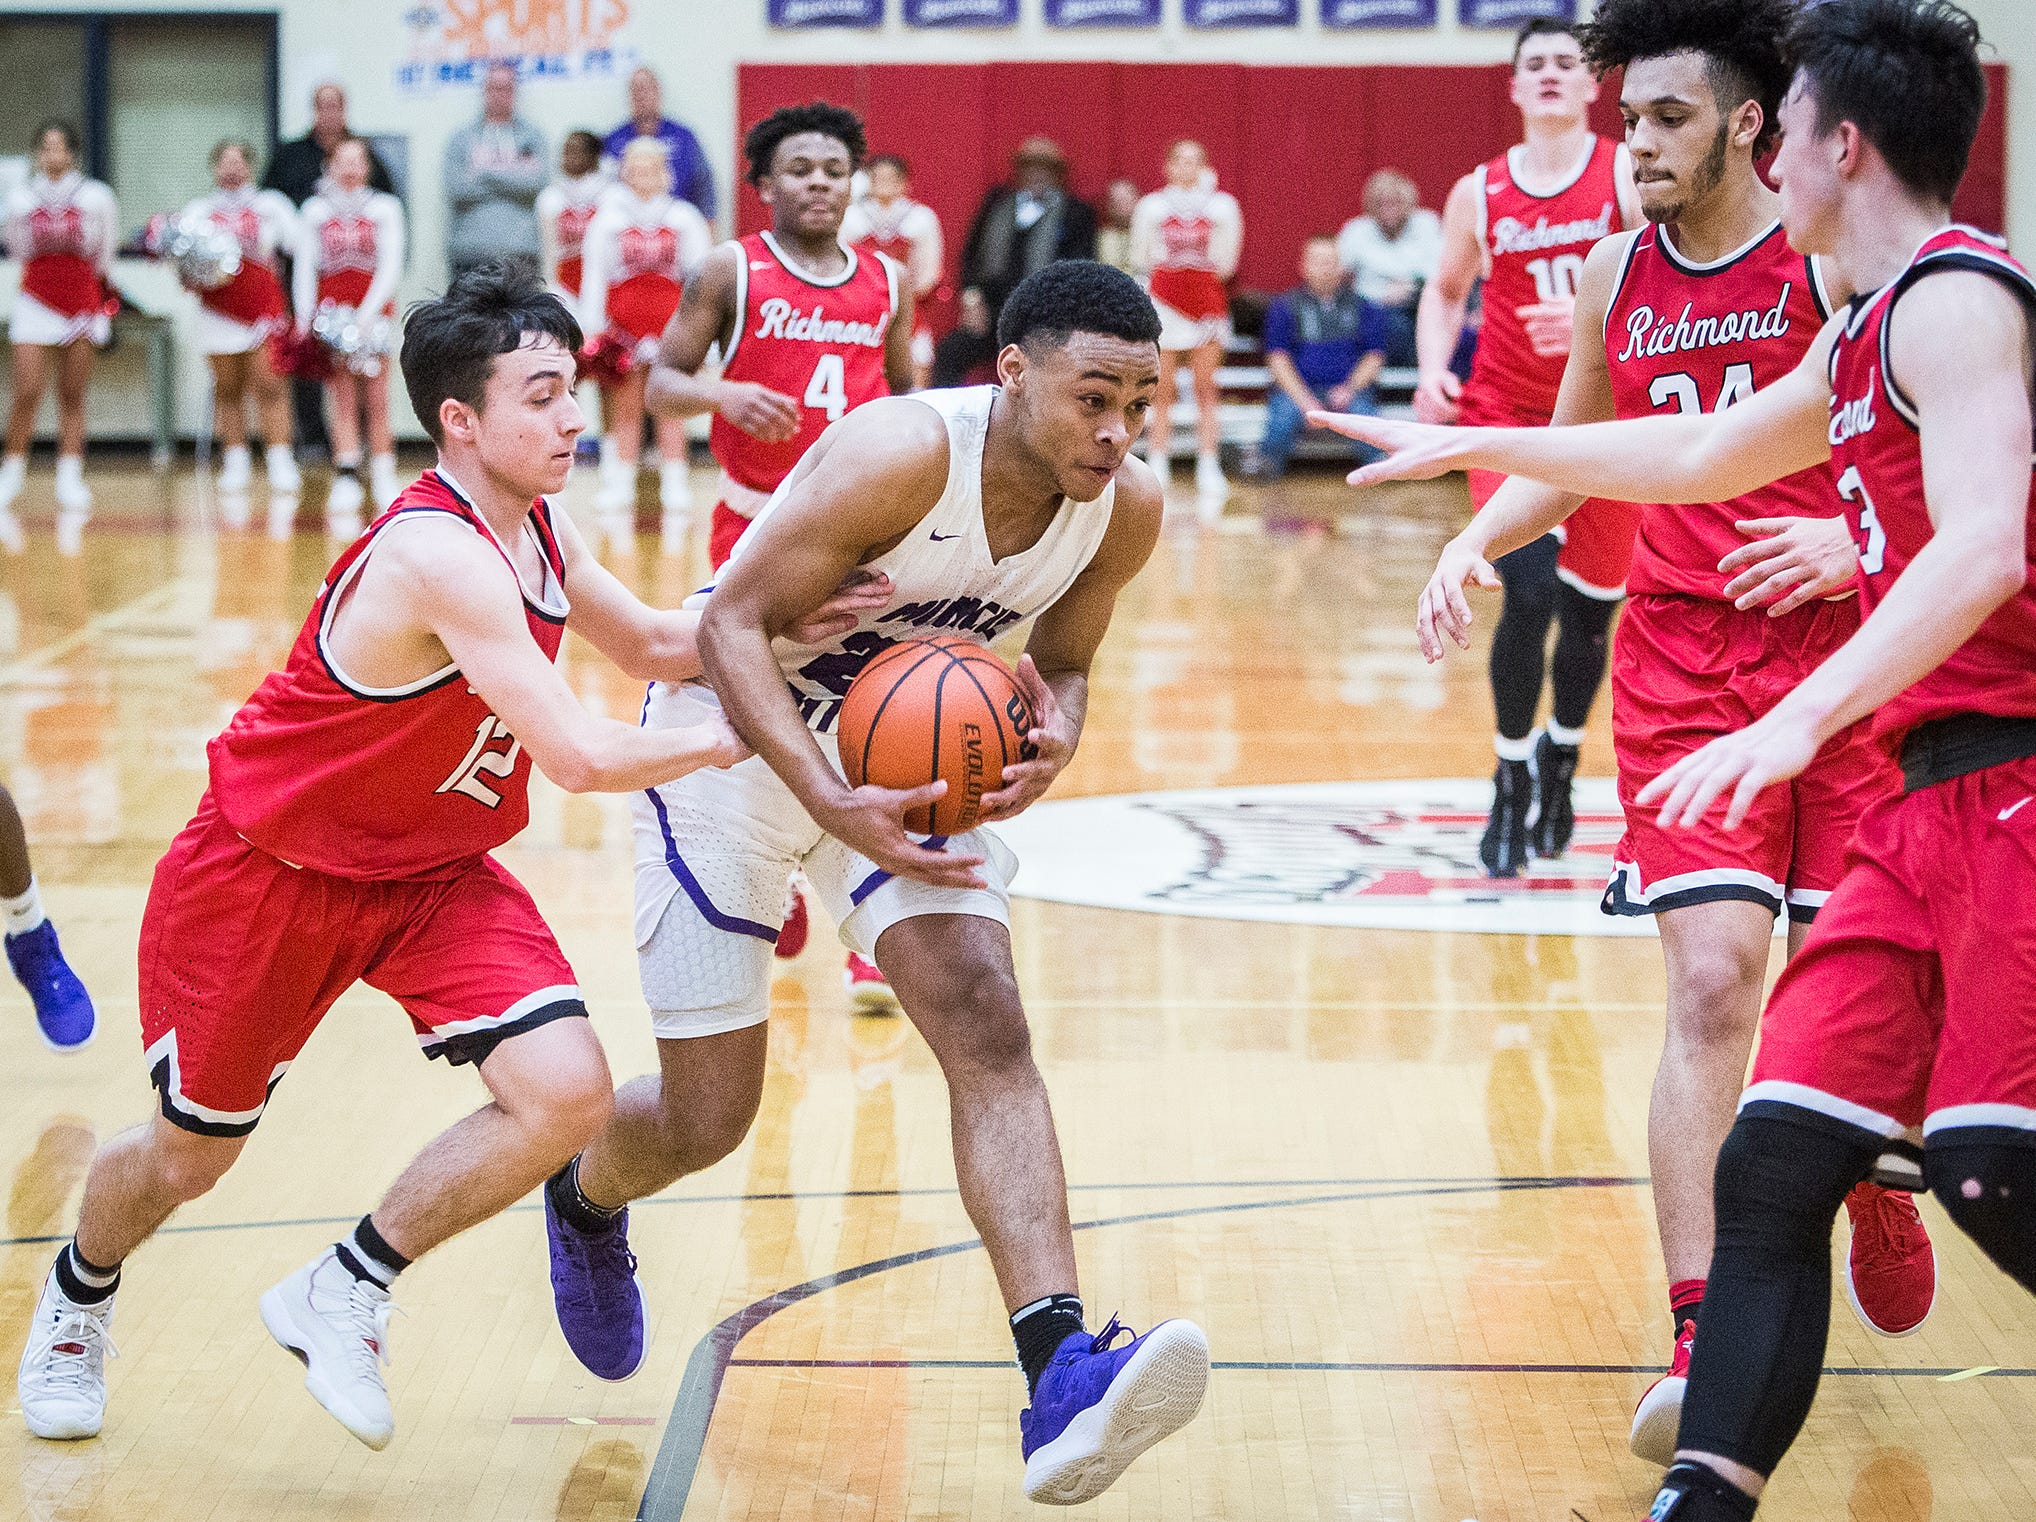 Central's Victor Young struggles past Richmond's defense during their game at Southside Middle School Friday, Jan. 11, 2019.